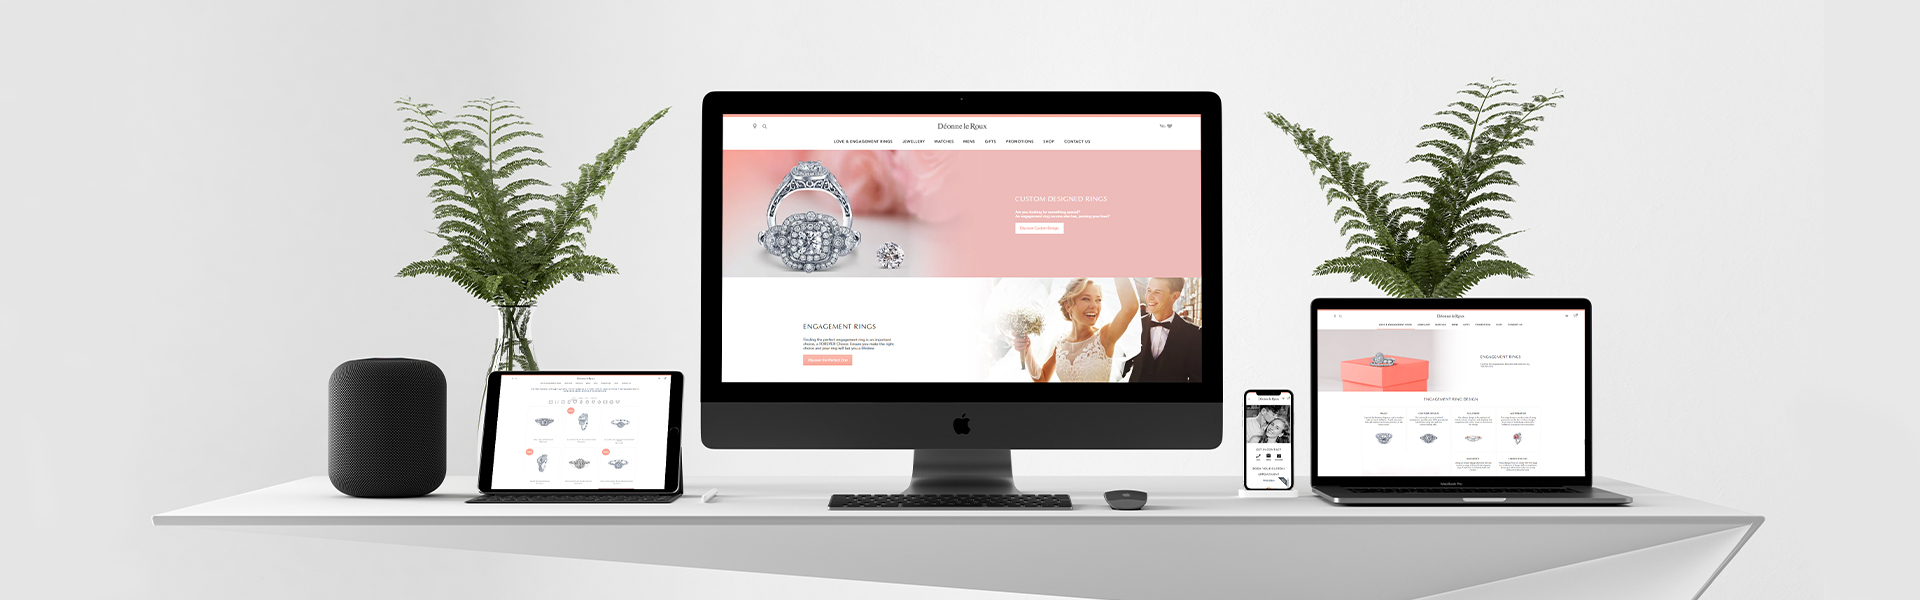 Born Intelligence Deonne Le Roux Website Redesign and Development